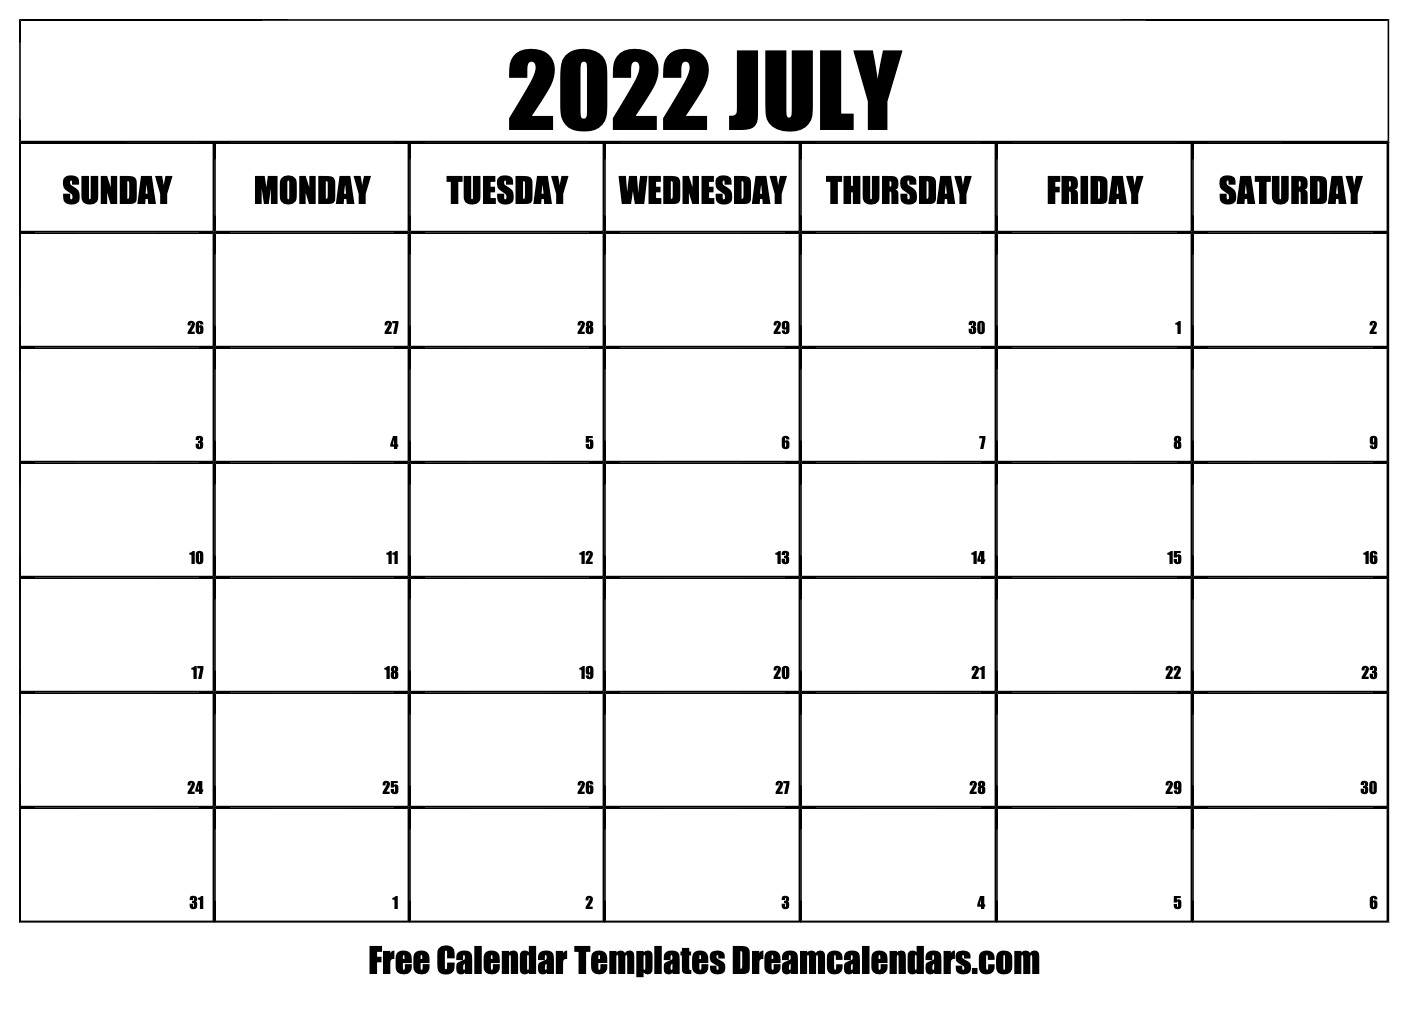 July 2022 Calendar | Free Blank Printable Templates with regard to Sunset And Sunrise Calender 2022 2023